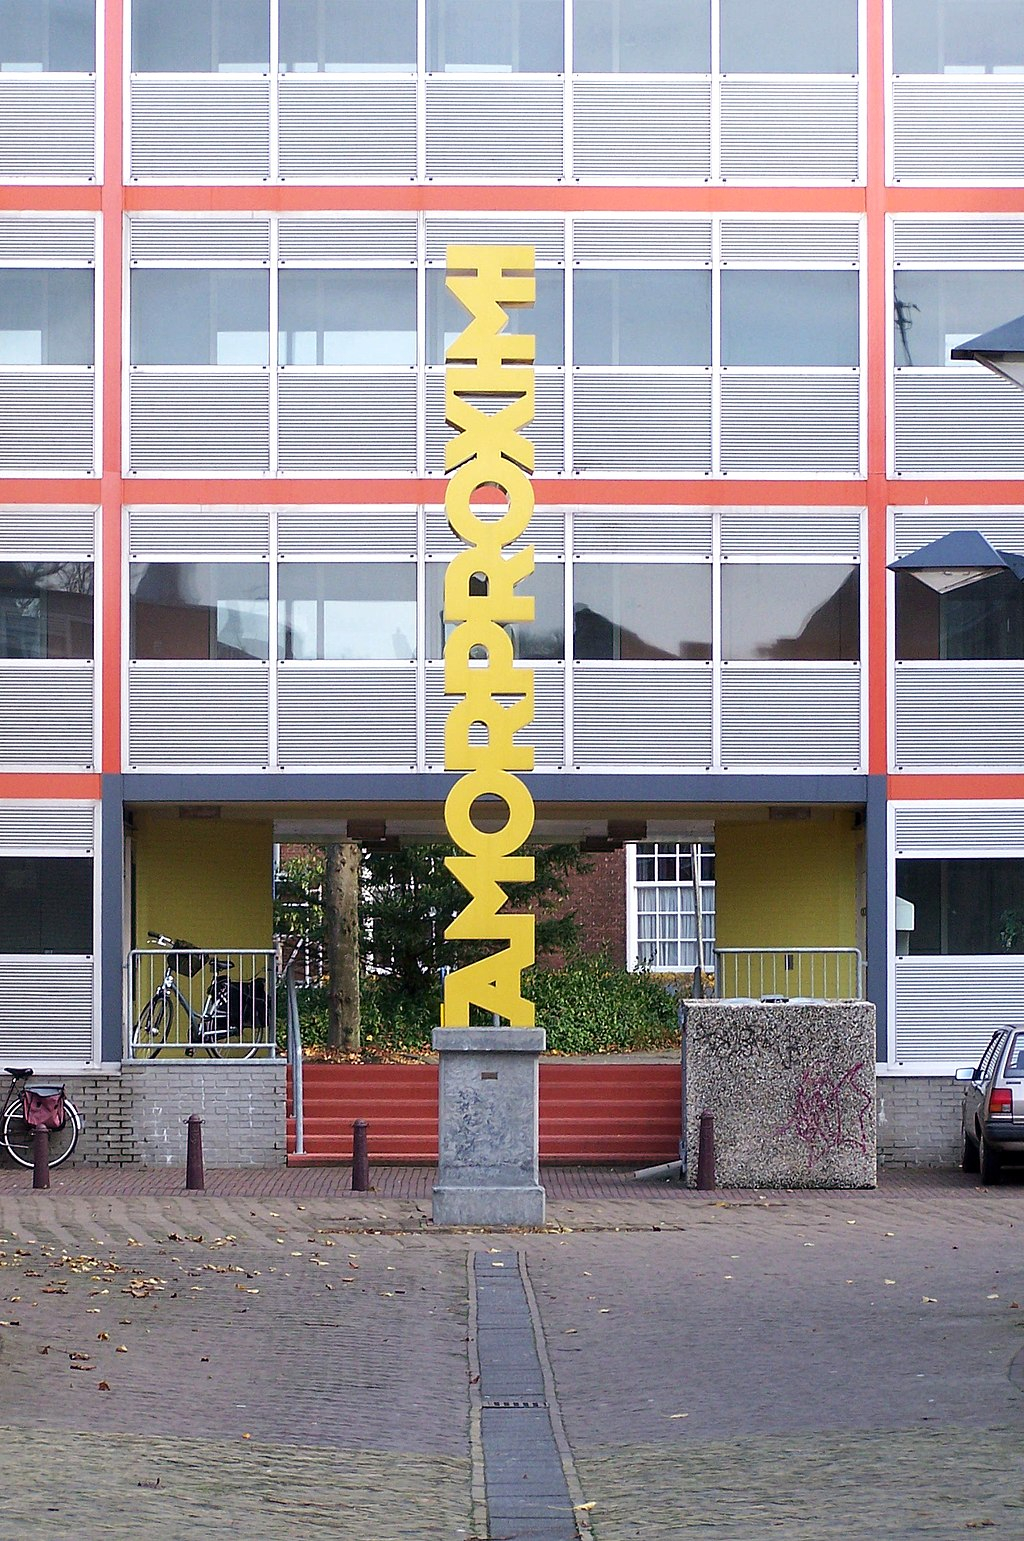 "Sculpture ""Amorproximi"", made by Groenewoud/Buij (Gerard A. Groenewoud and Tilly A. Buij) in 1999 and placed at the Amelandshof together with the sculpture ""Amordei"" at the opposite of the street."